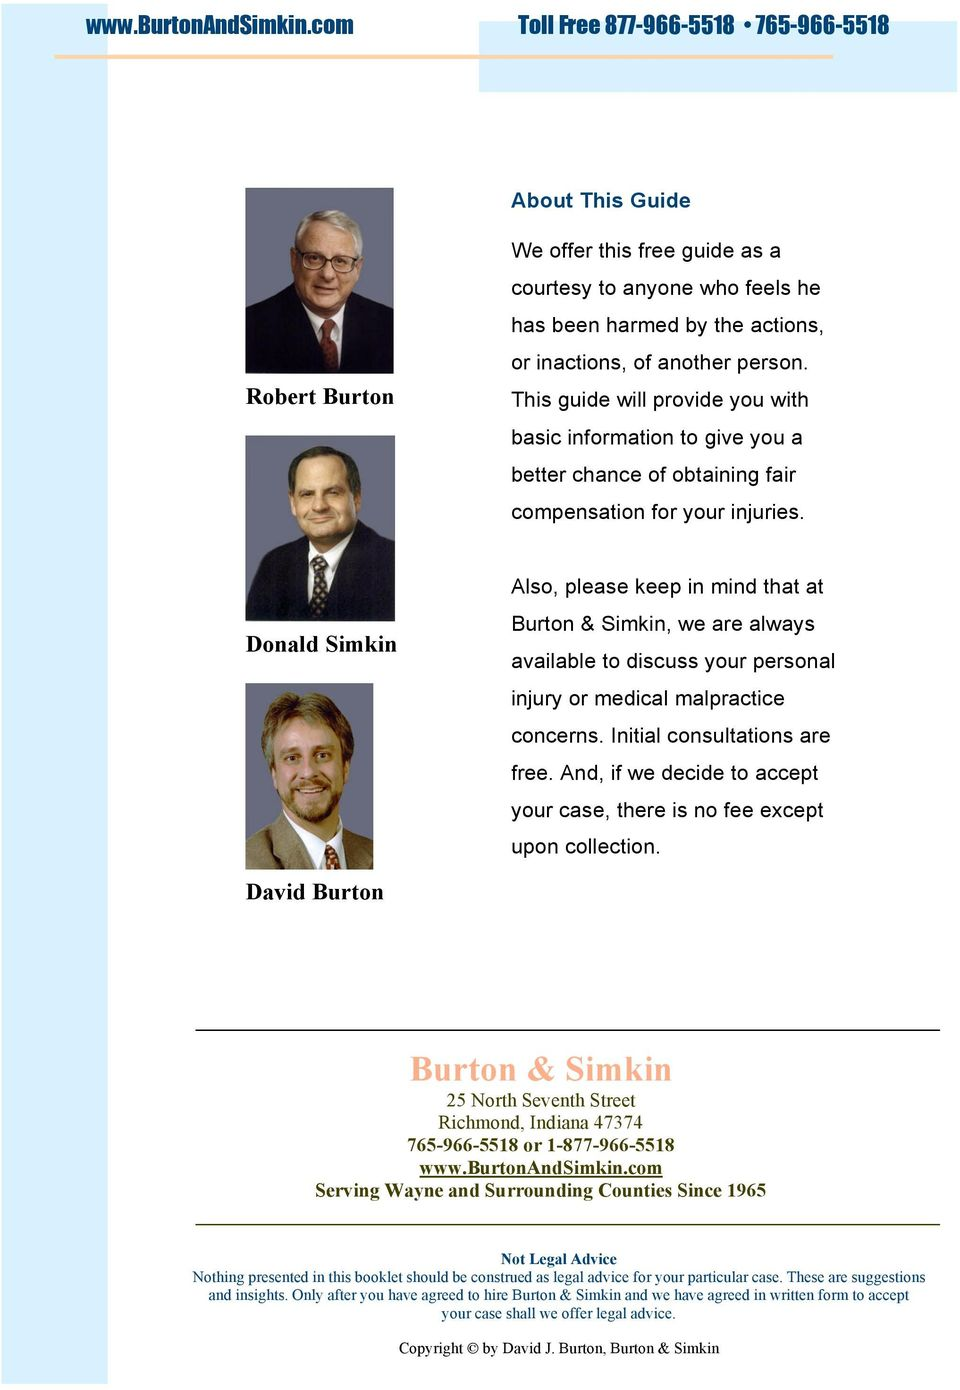 Donald Simkin Also, please keep in mind that at Burton & Simkin, we are always available to discuss your personal injury or medical malpractice concerns. Initial consultations are free.